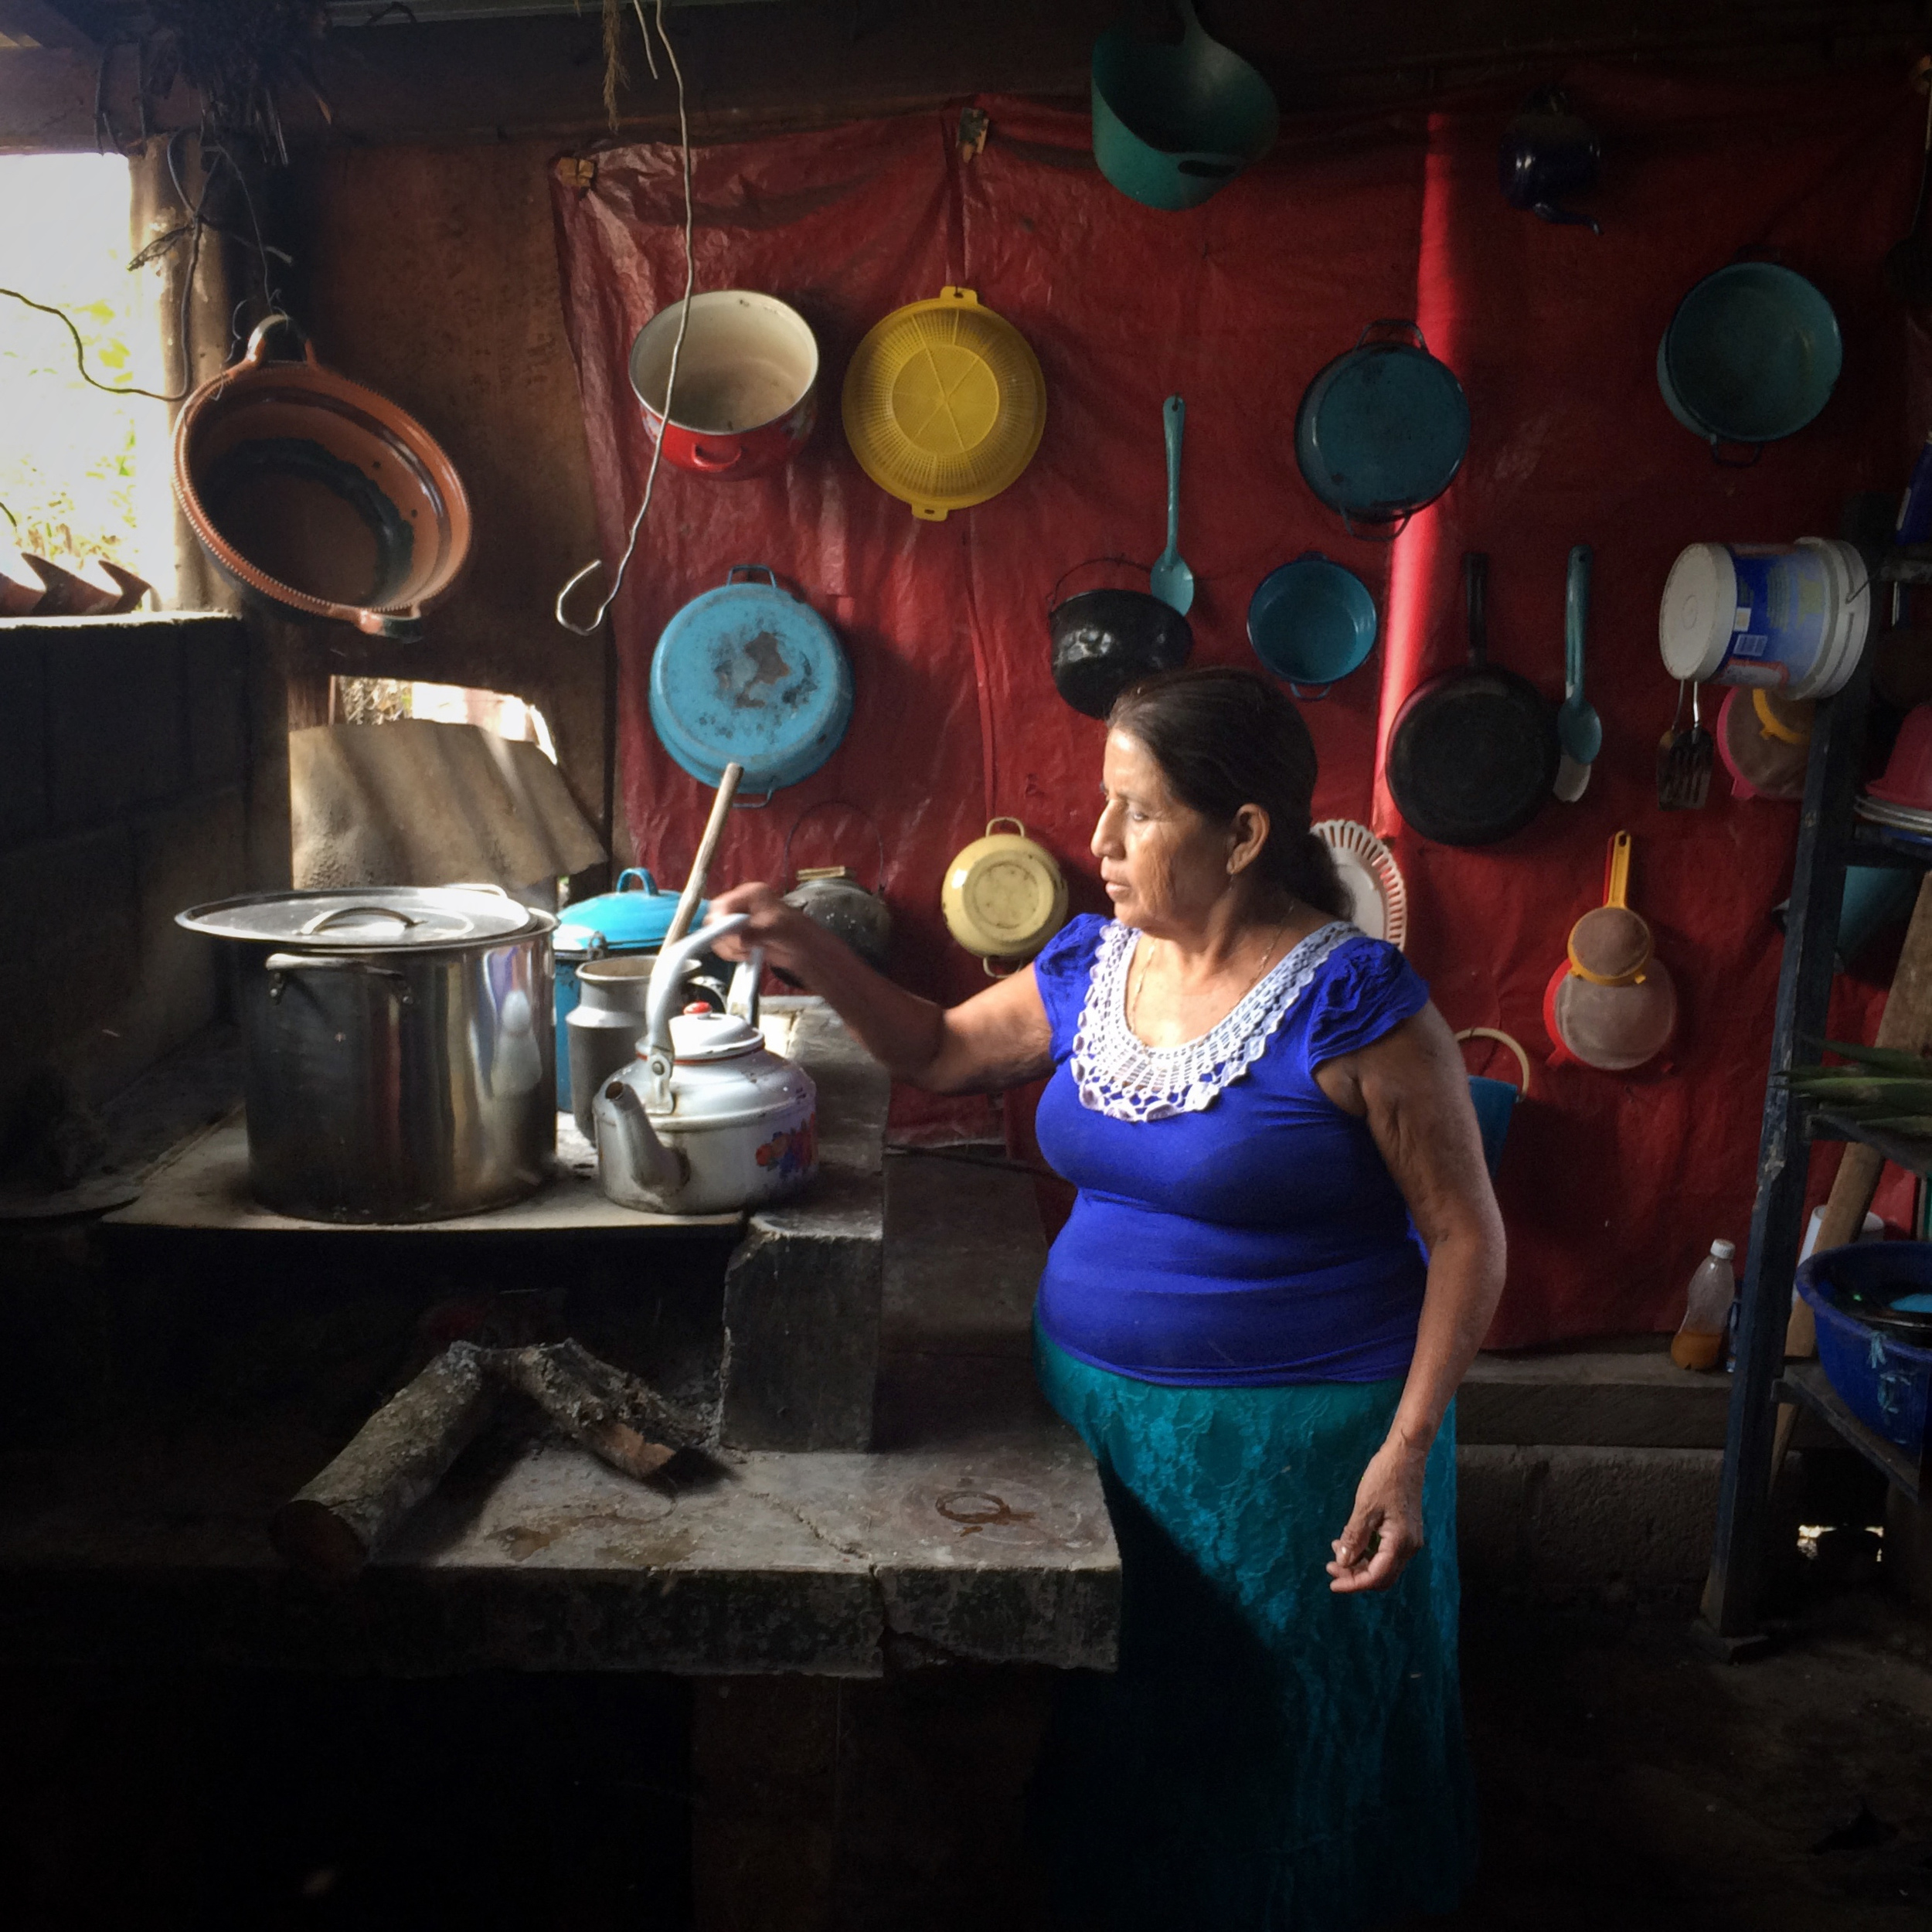 Siria Velazquez Ramirez, 61, pours coffee at home. Montebello Altamirano, Angel Albino Corzo, Chiapas, Mexico. December 9, 2015. (James Rodriguez)